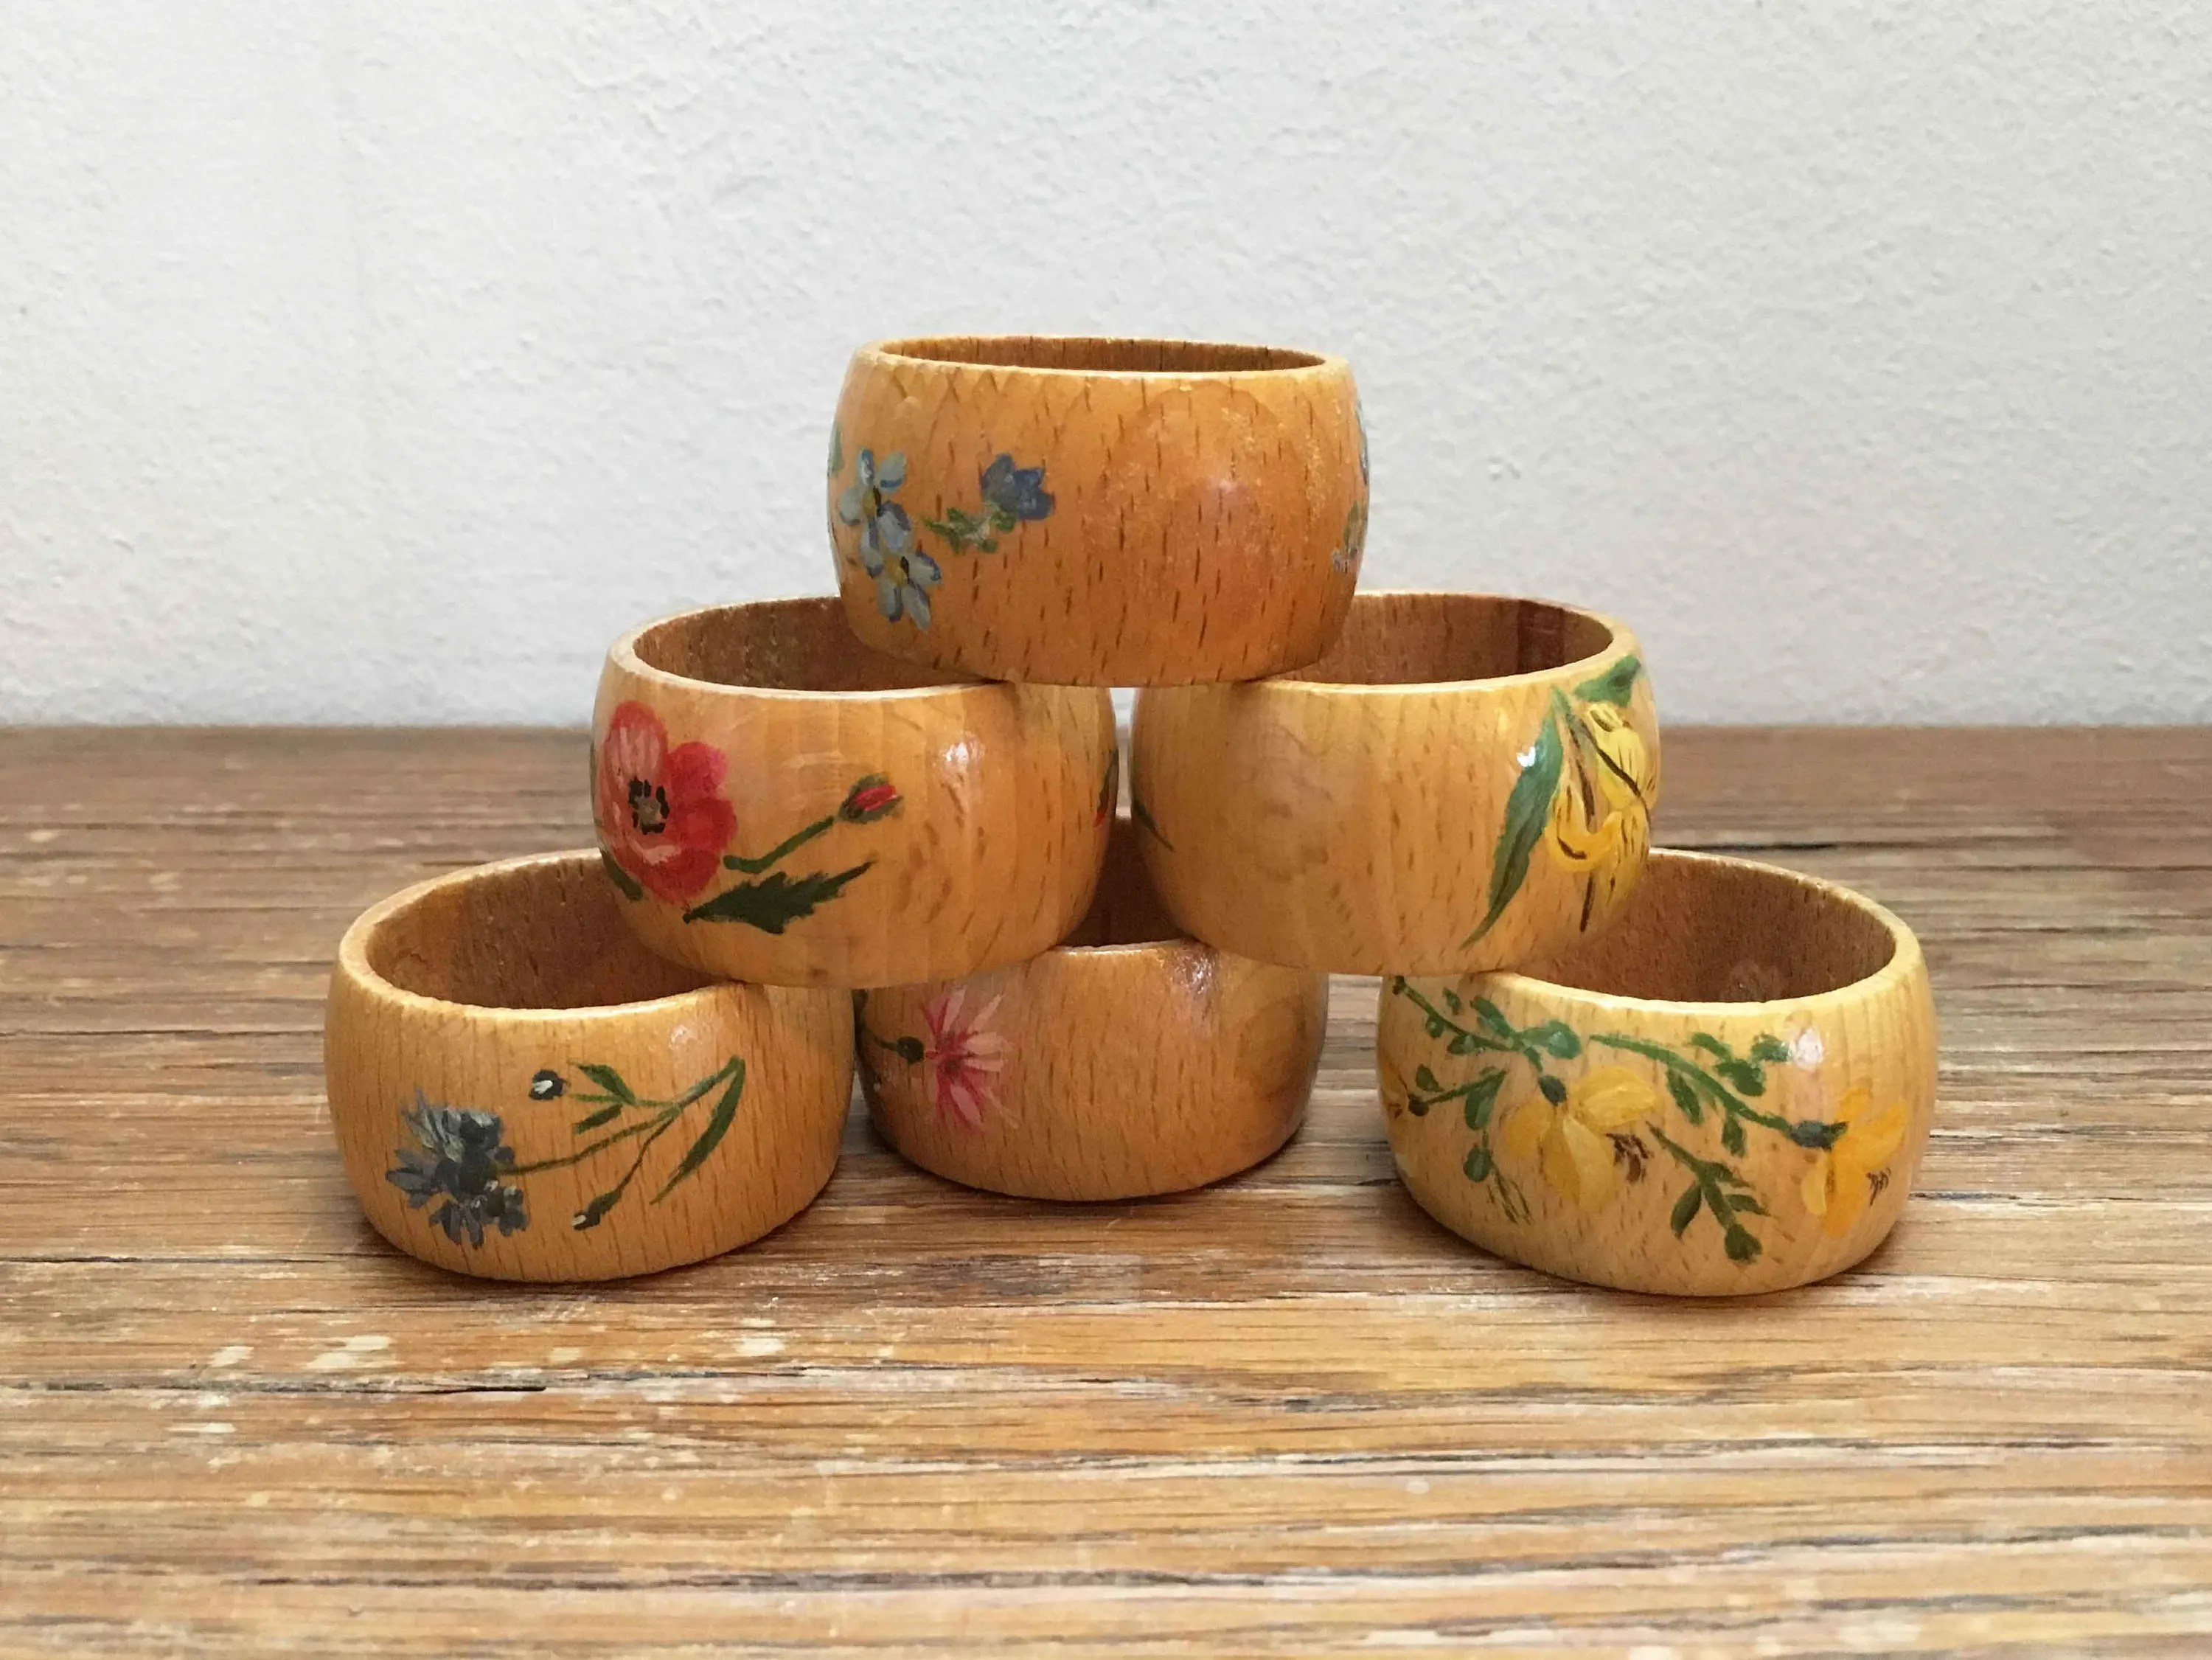 Houten Cilinder 6 Houten Servetringen Vintage Hand Painted Napkin Rings Retro Floral Dining Room Deco Flowered Boho Table Decor Folk Art Decoration